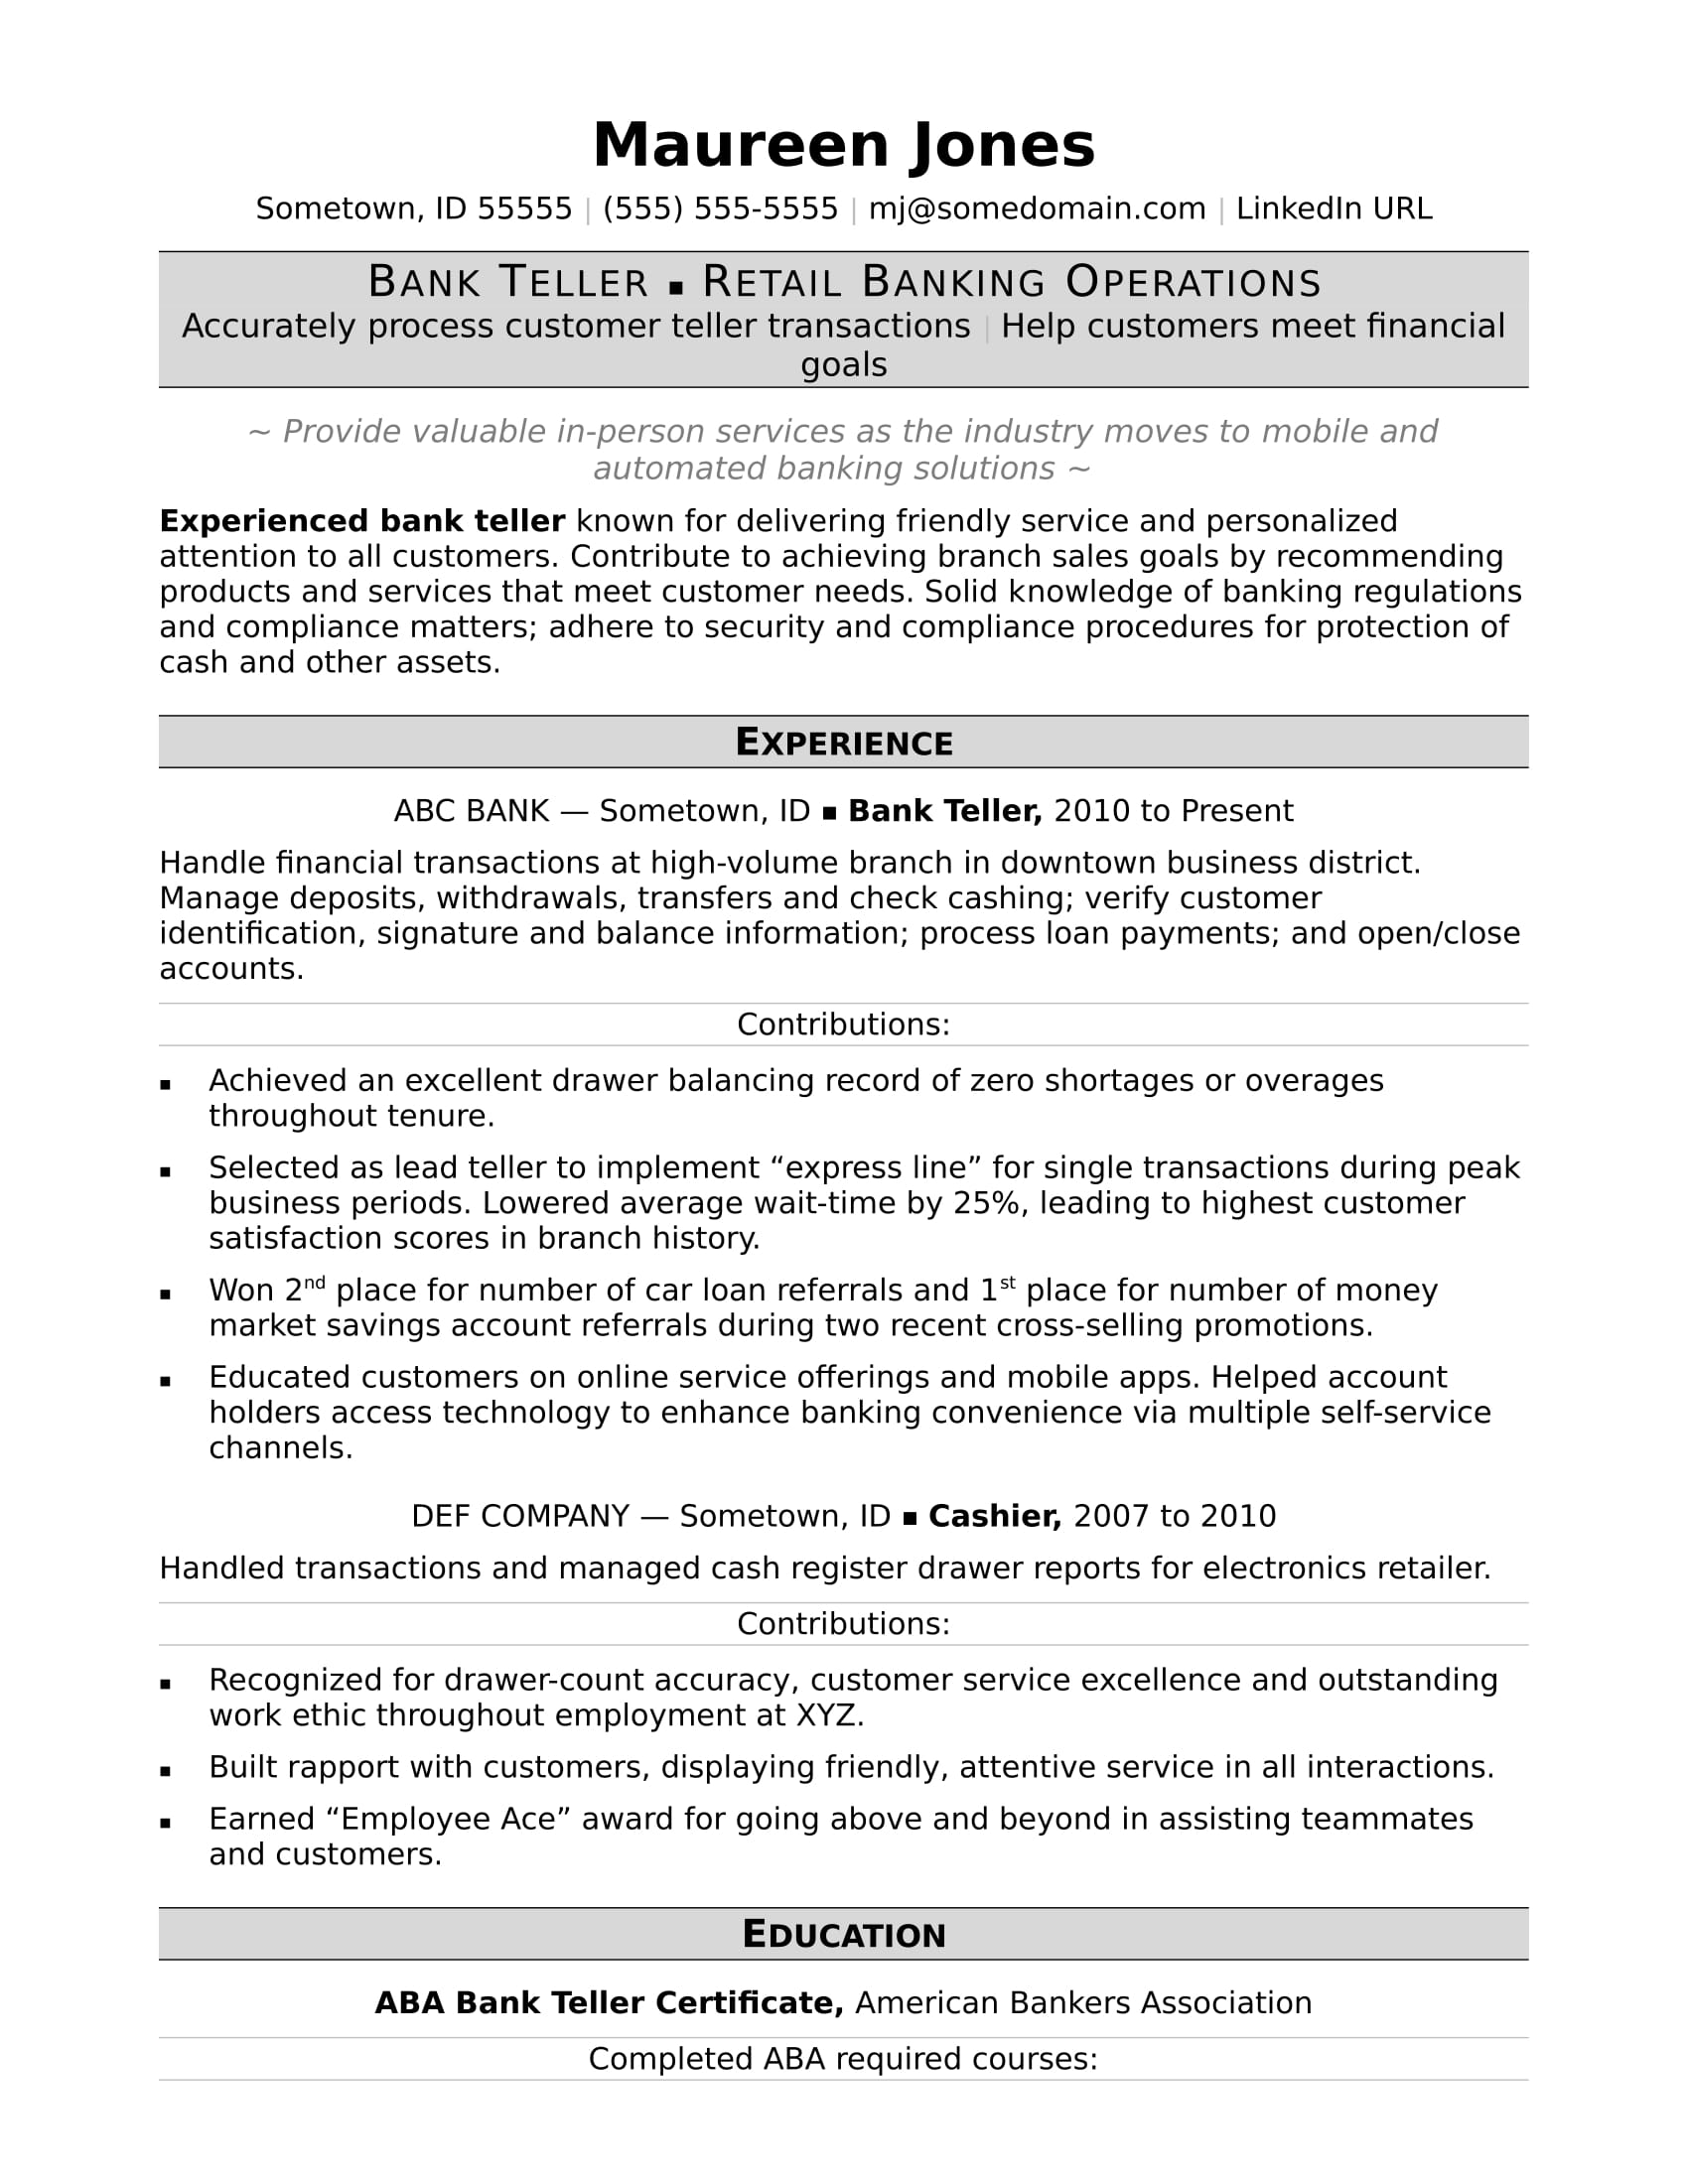 Bank teller resume sample for Sample resume to apply for bank jobs